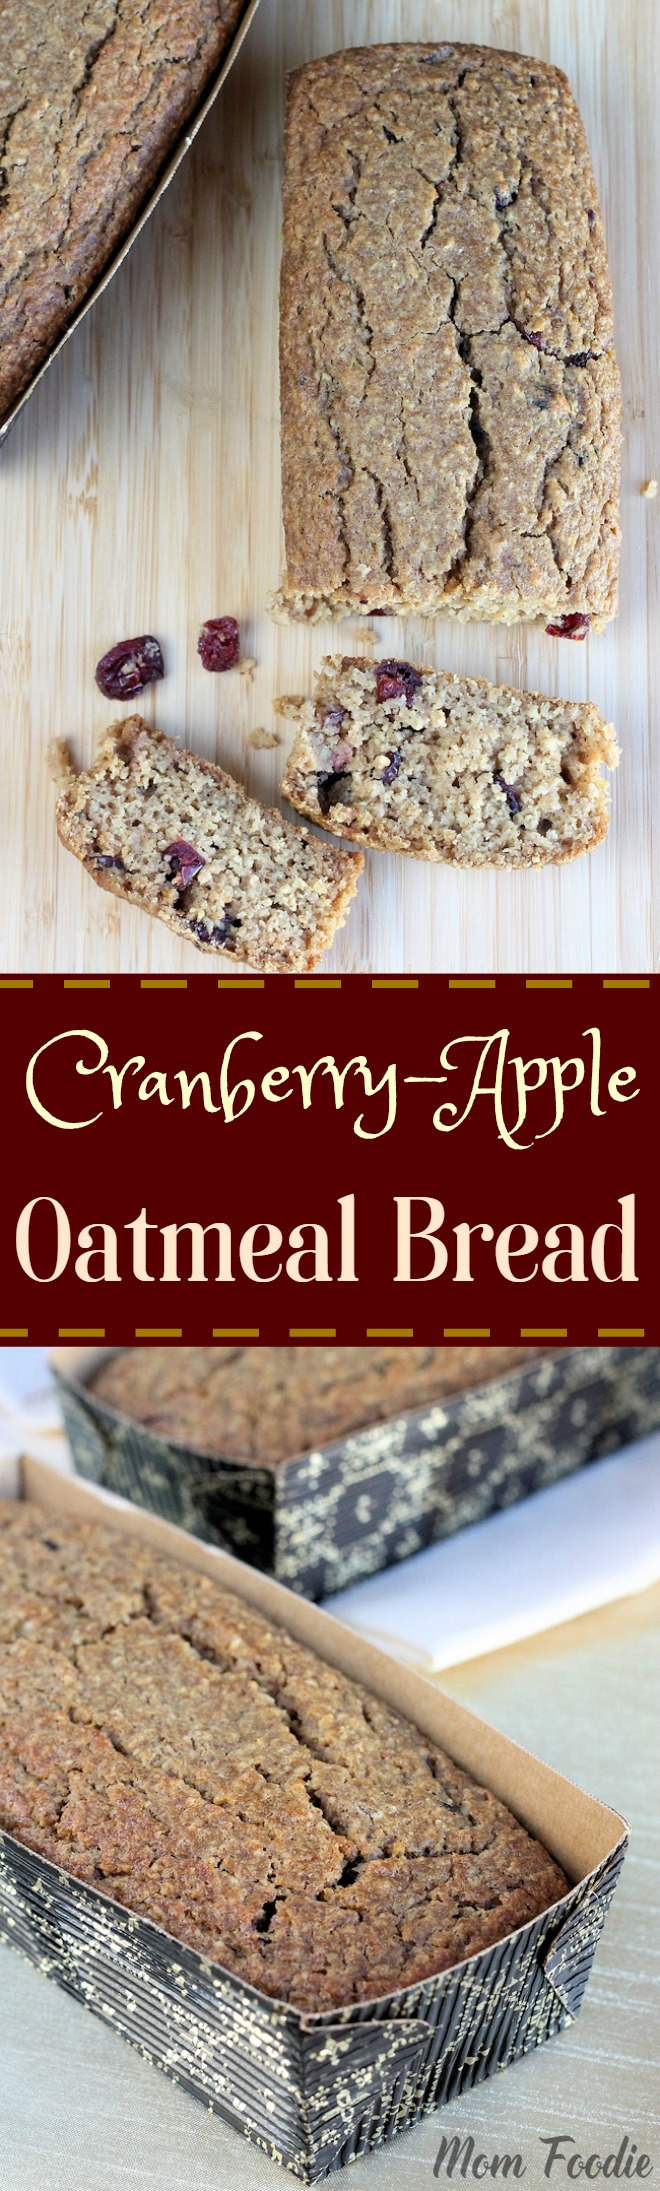 Cranberry Apple Oatmeal Bread